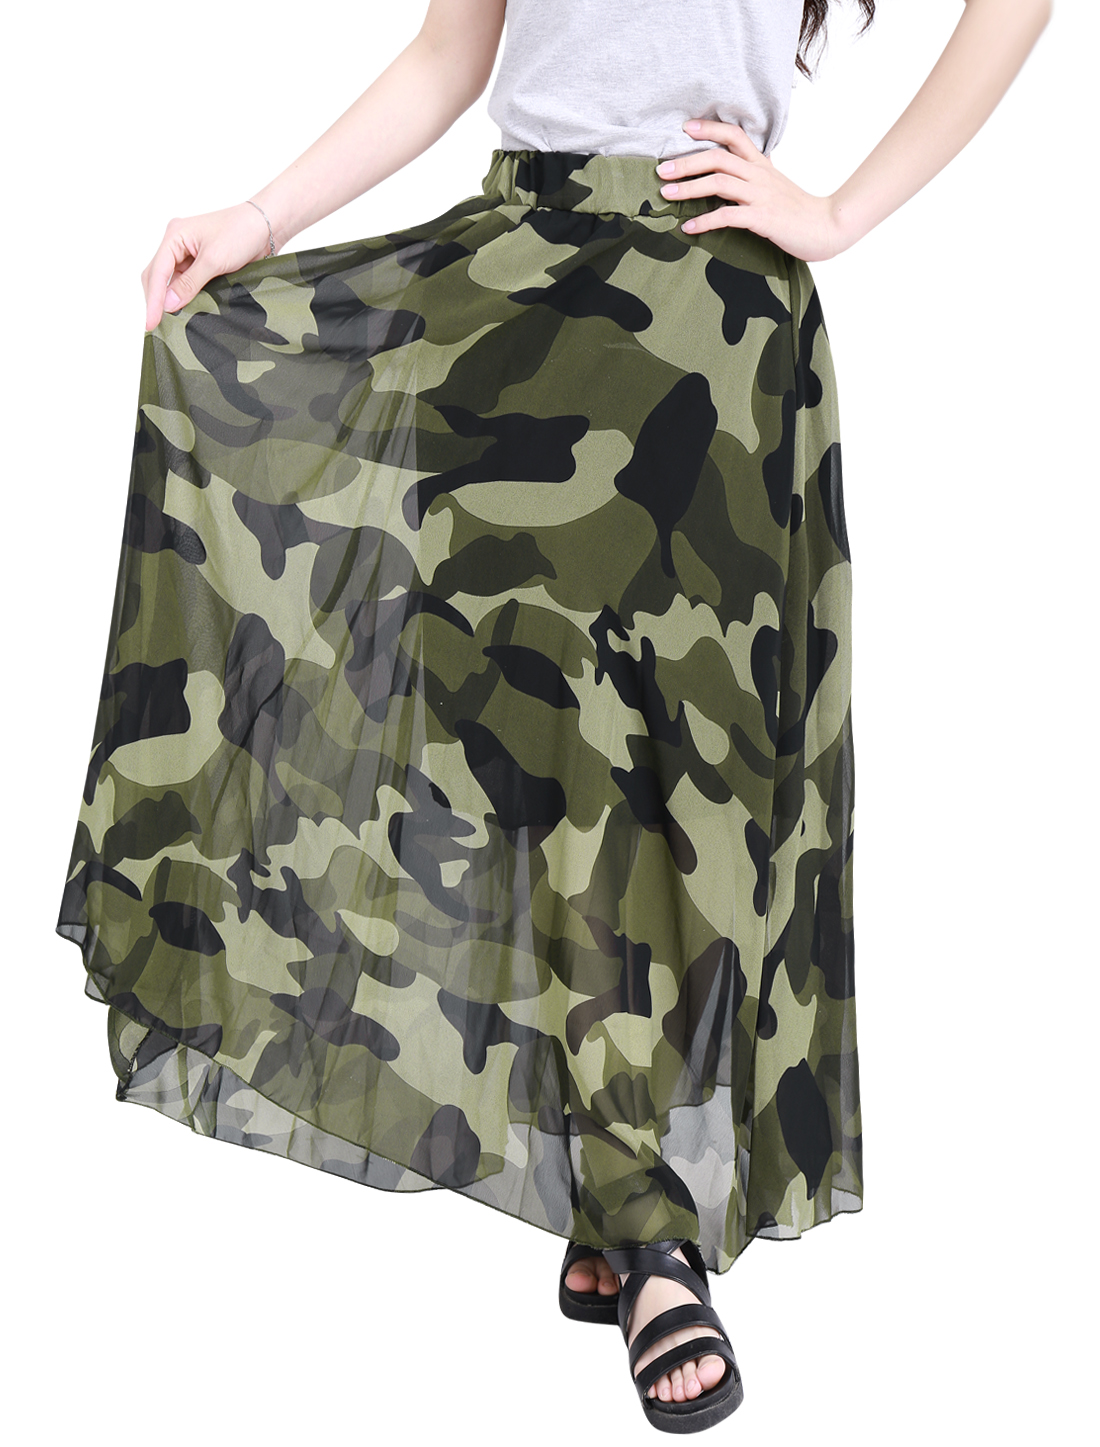 Lady Elastic Waist Camouflage Prints Leisure Maxi Skirt Army Green S